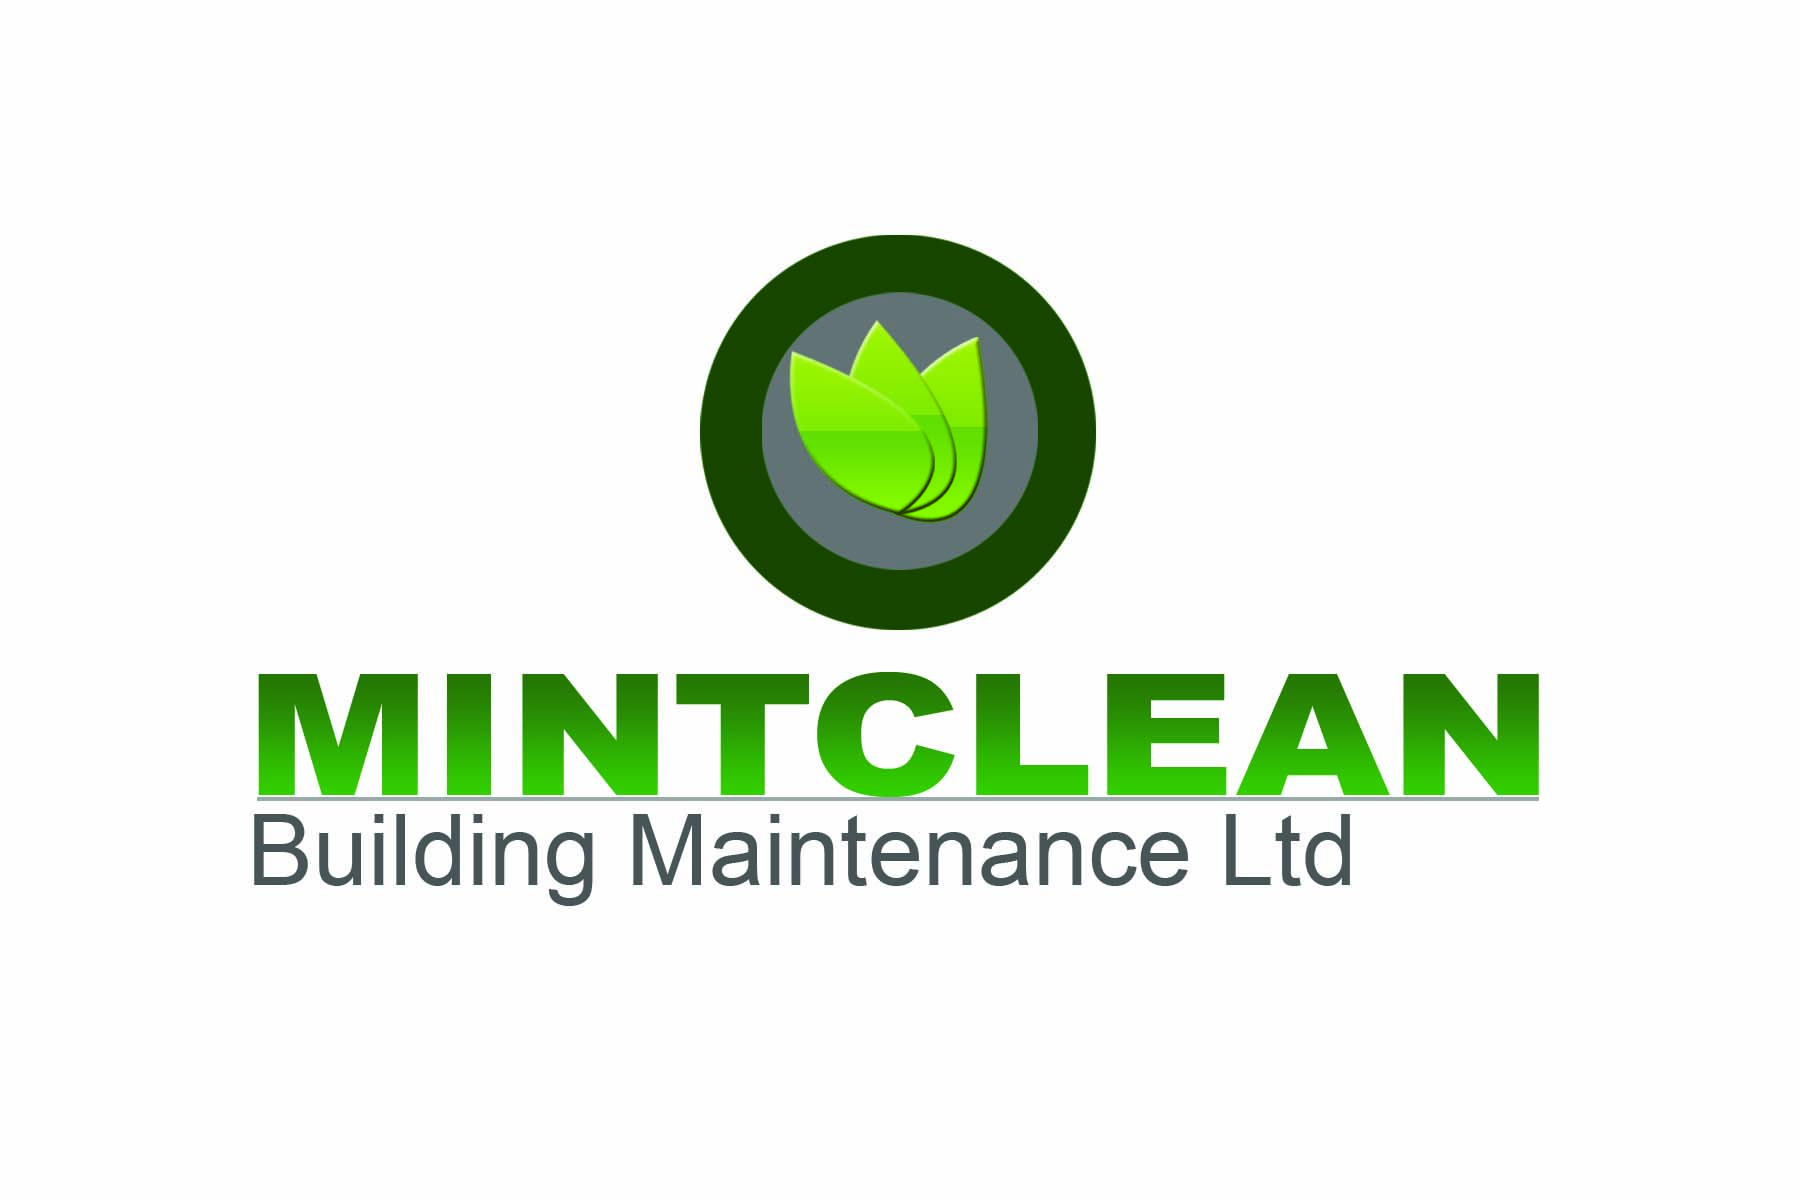 Logo Design by Jastinejay Manliguez - Entry No. 76 in the Logo Design Contest MintClean Building Maintenance Ltd. Logo Design.